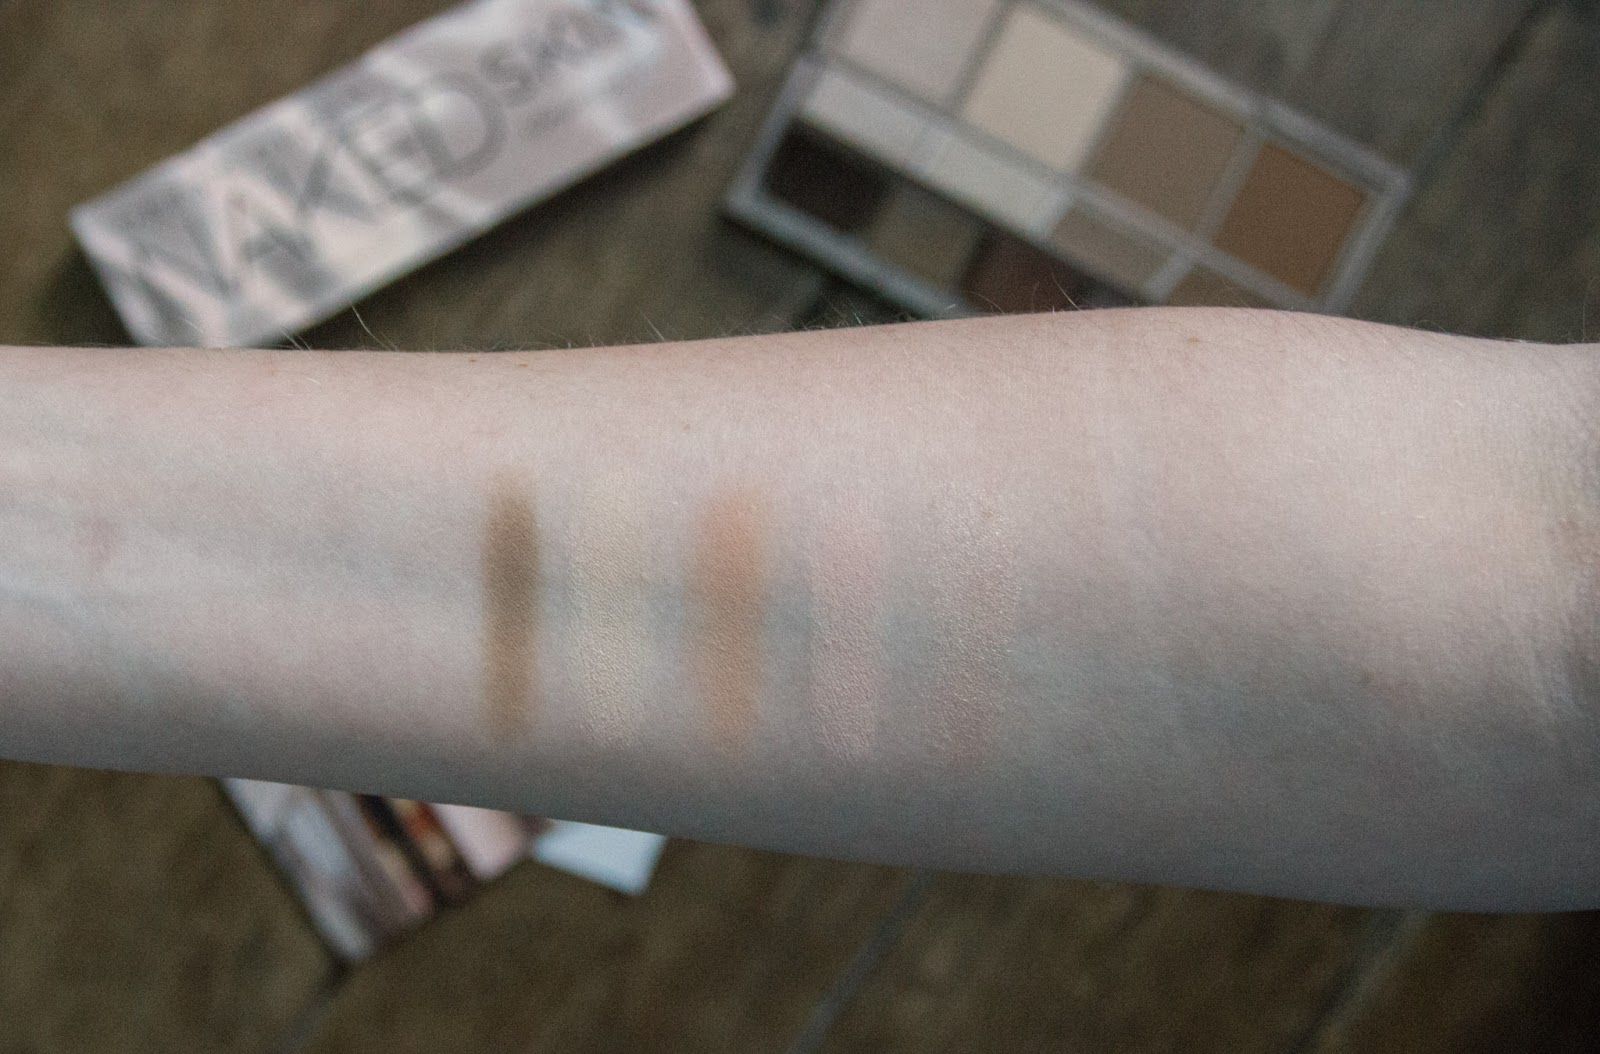 Urban Decay Naked Skin Shapeshifter Contour Palette swatches